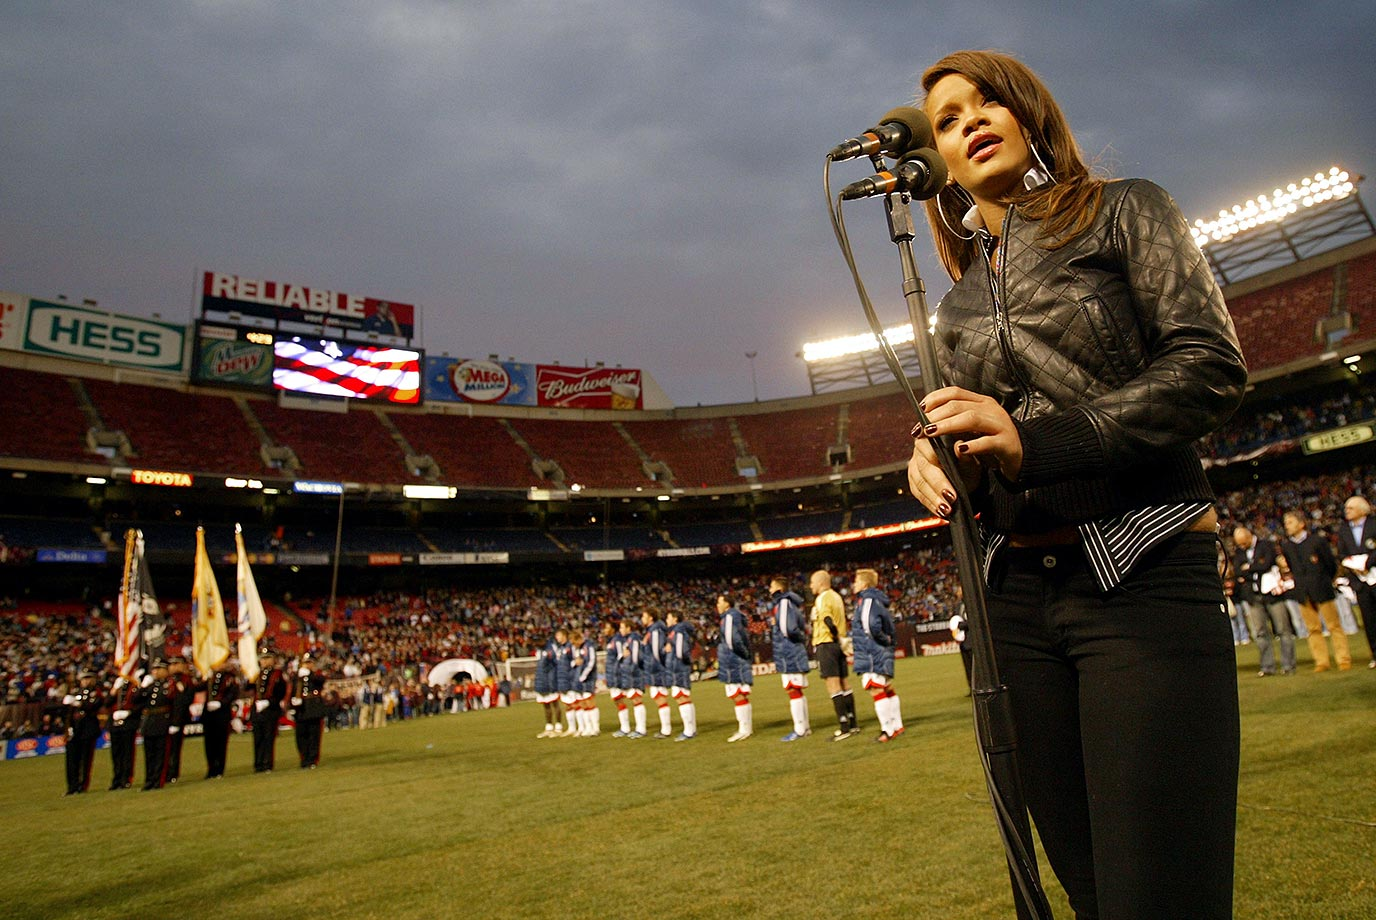 Rihanna sings the National Anthem before the New York Red Bulls game against the New England Revolution on April 8, 2006 at Giants Stadium in East Rutherford, N.J.